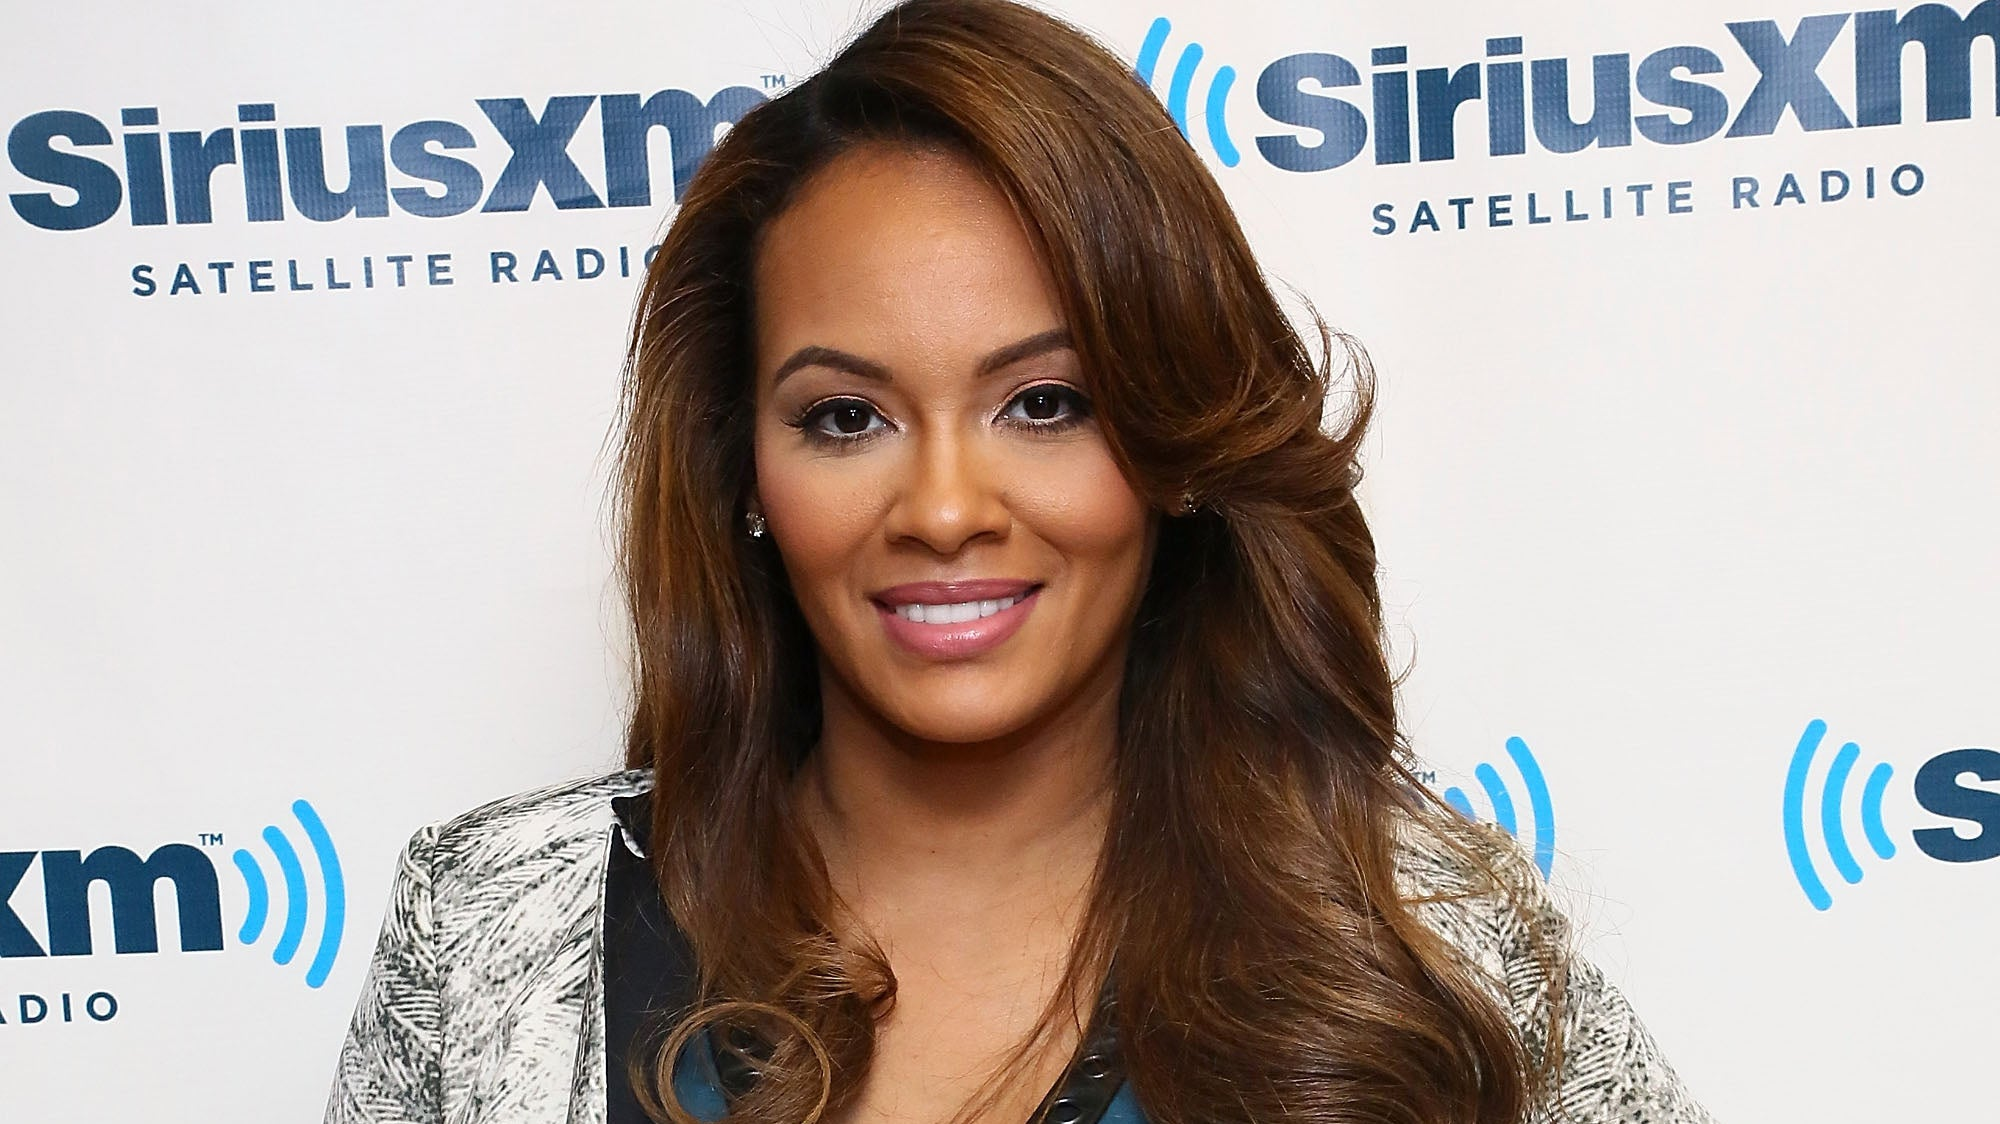 'Baseball wife' Evelyn Lozada reveals she had a miscarriage | Fox News